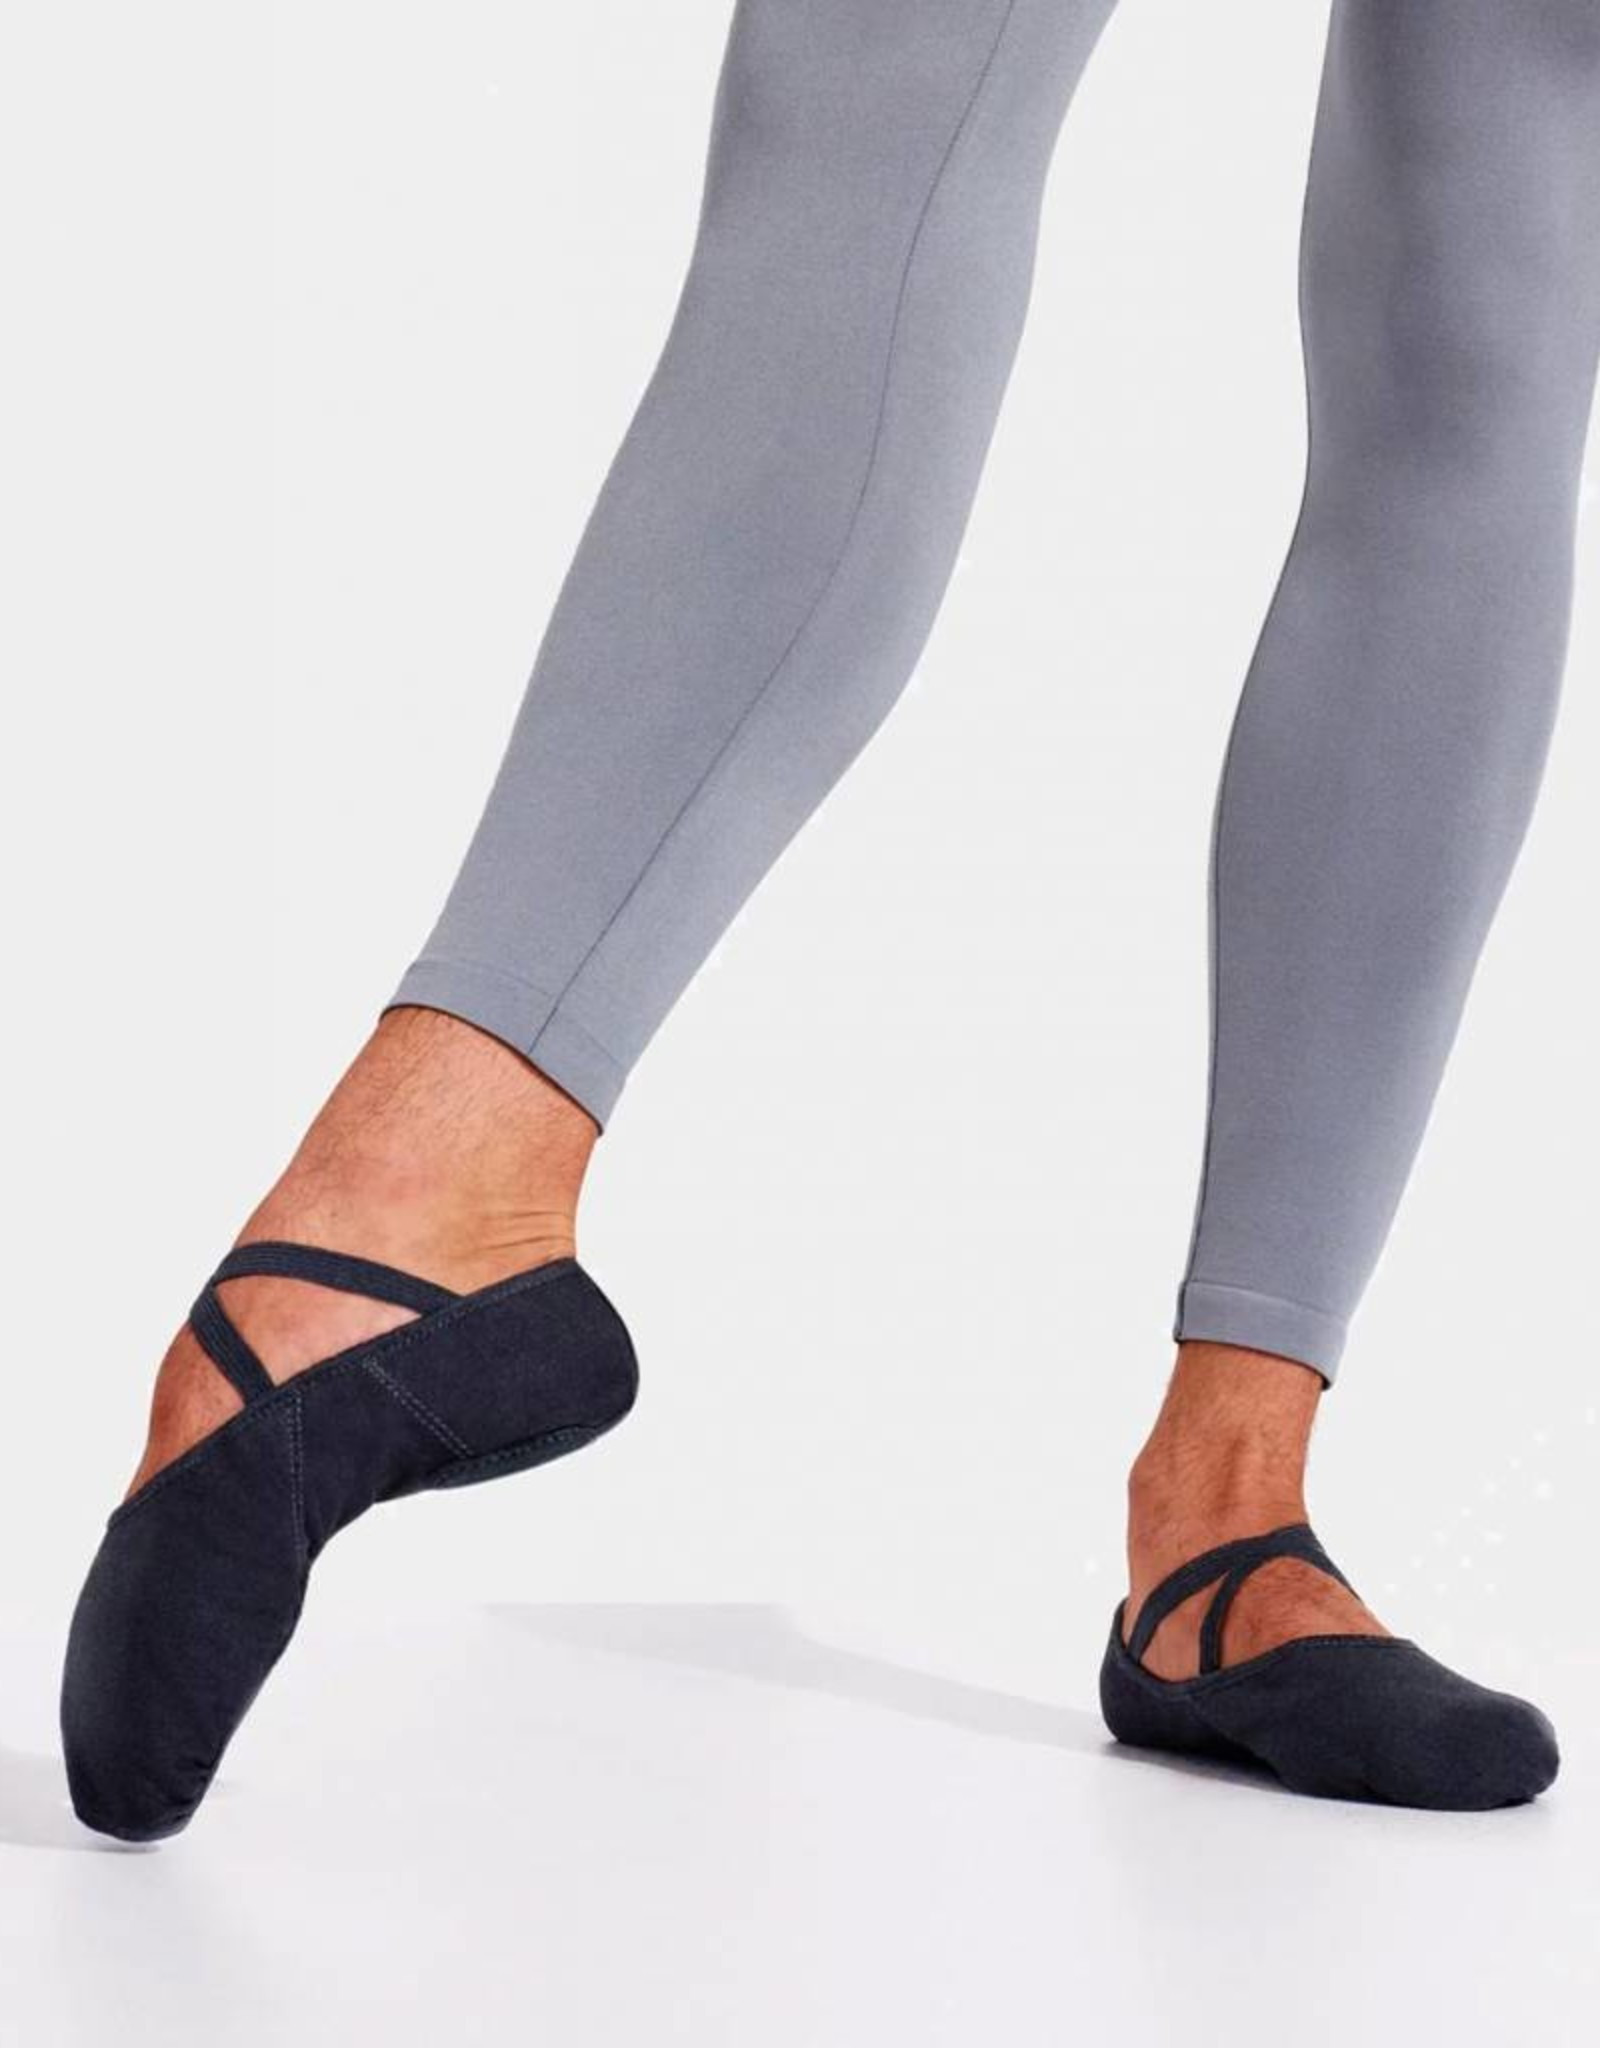 CAPEZIO ROMEO - CANVAS SPLIT SOLE BALLET SLIPPERS (2021)